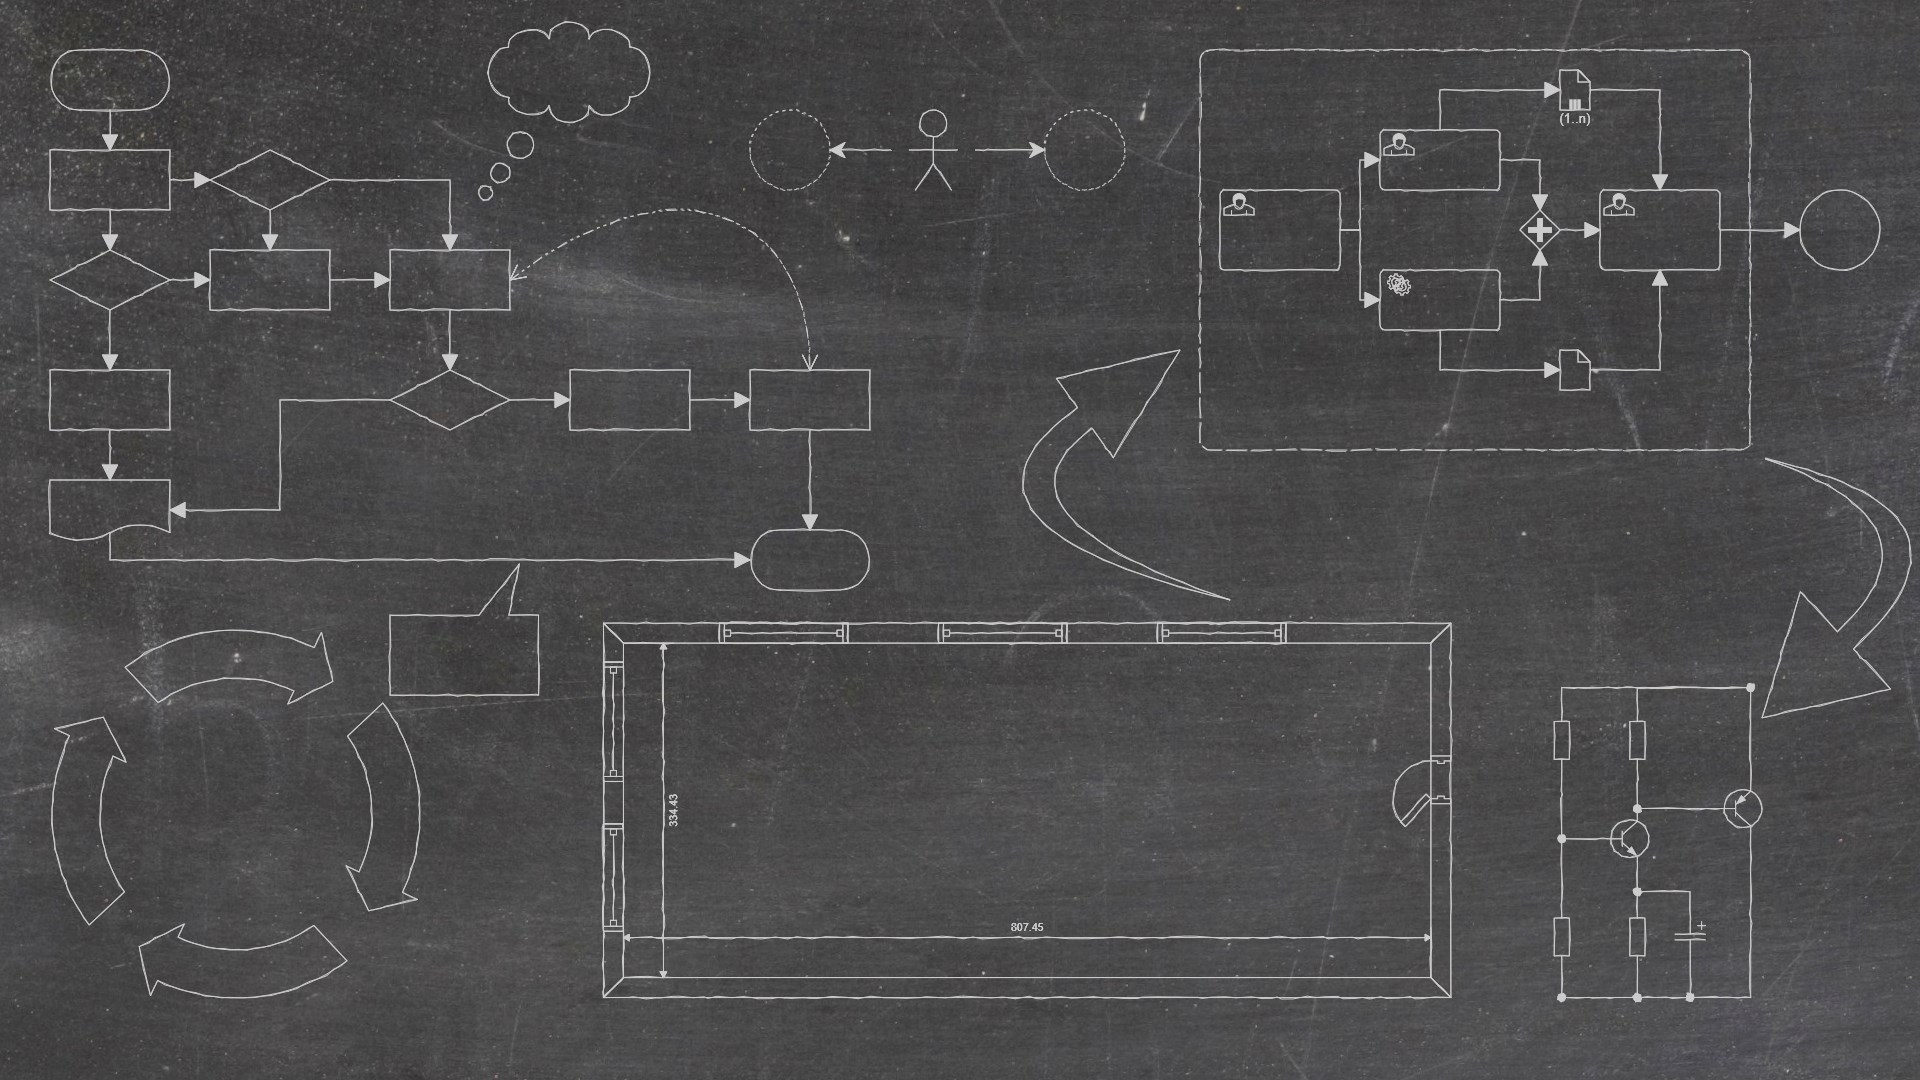 hight resolution of buy grapholite diagrams flow charts and floor plans designer microsoft store